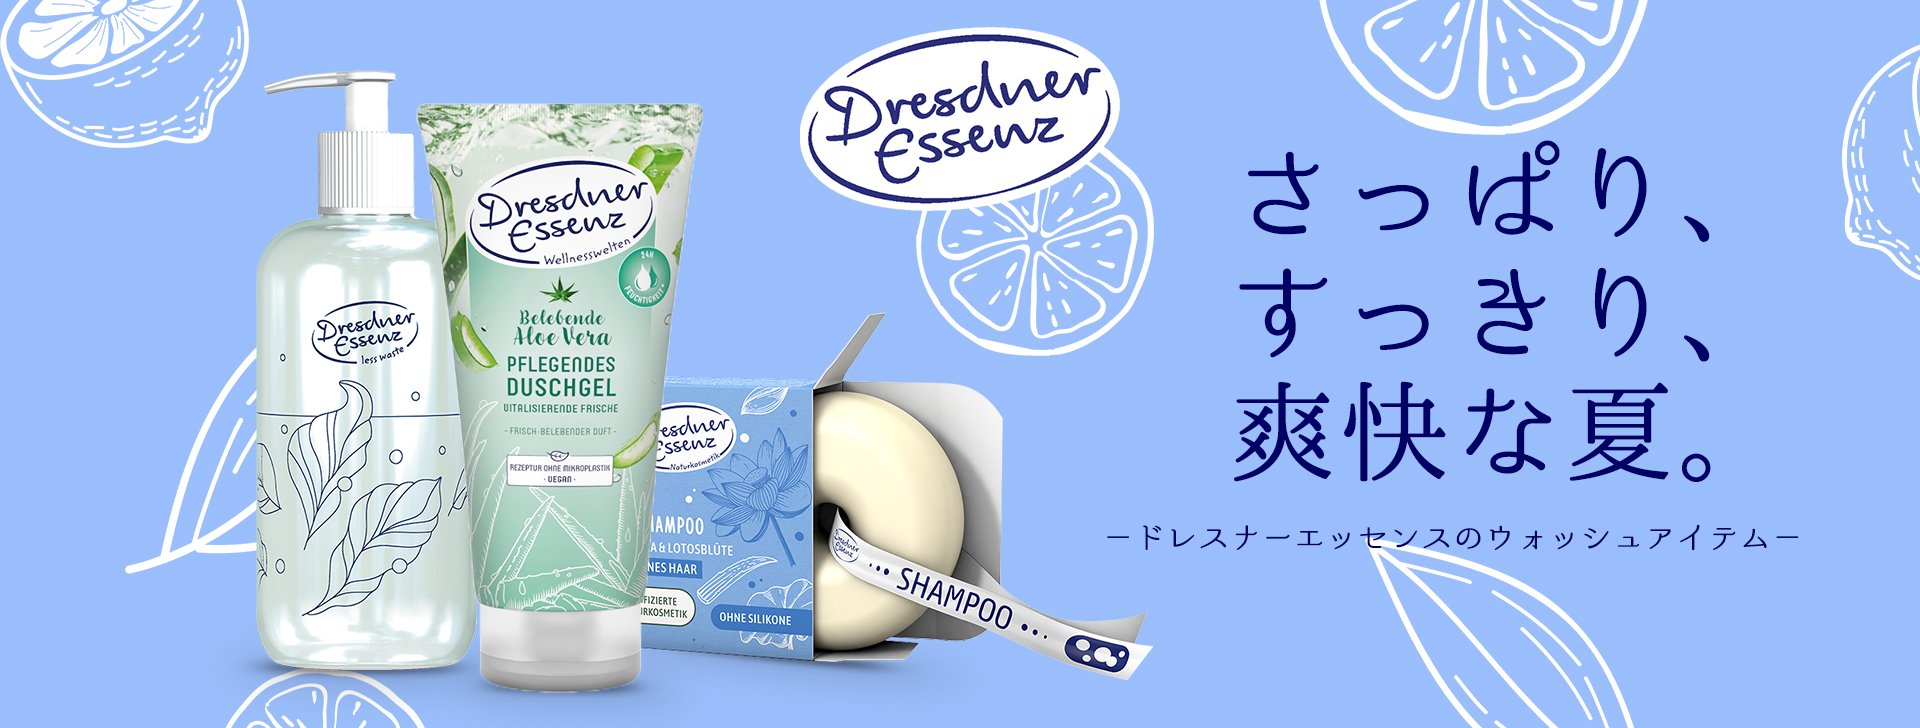 T.LeClerc 楽しい春の気配がする!春色アイテム10%off